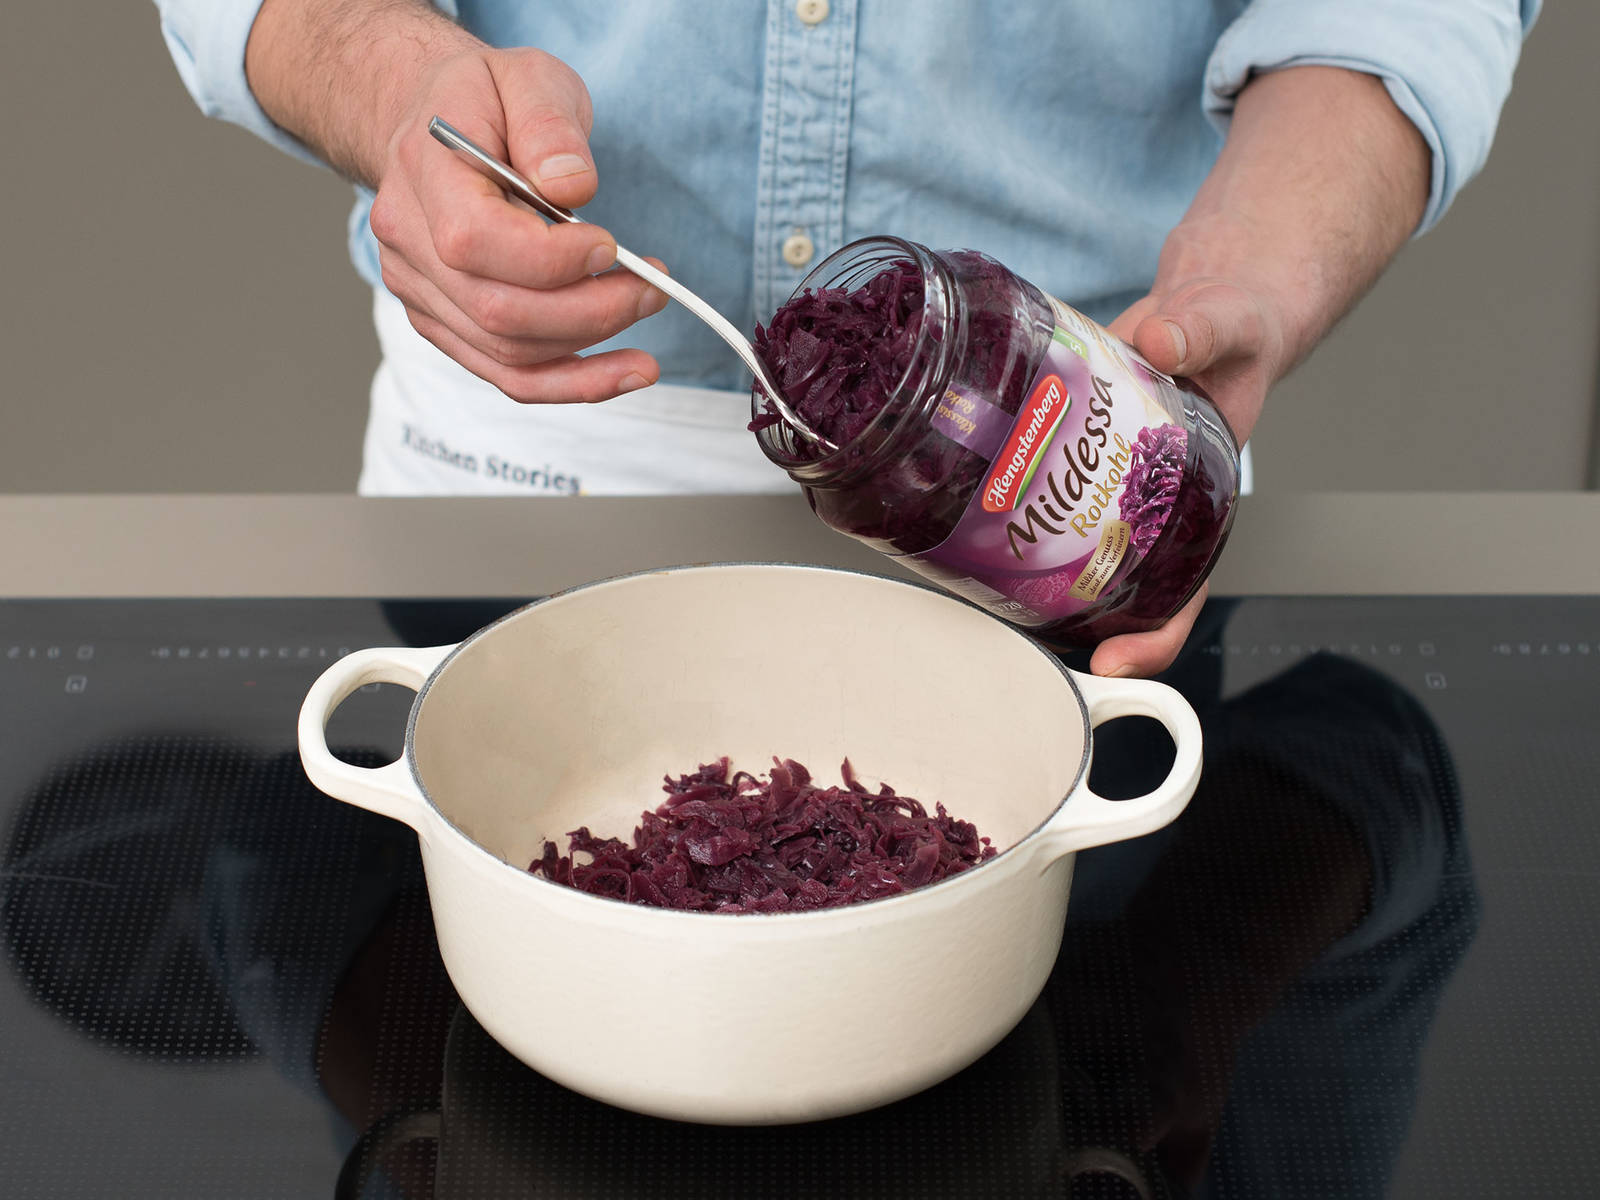 Add red cabbage to a large saucepan and season with juniper berries, cloves, and bay leaves. Warm over medium heat for approx. 8 – 10 min., then keep warm over low heat until serving.